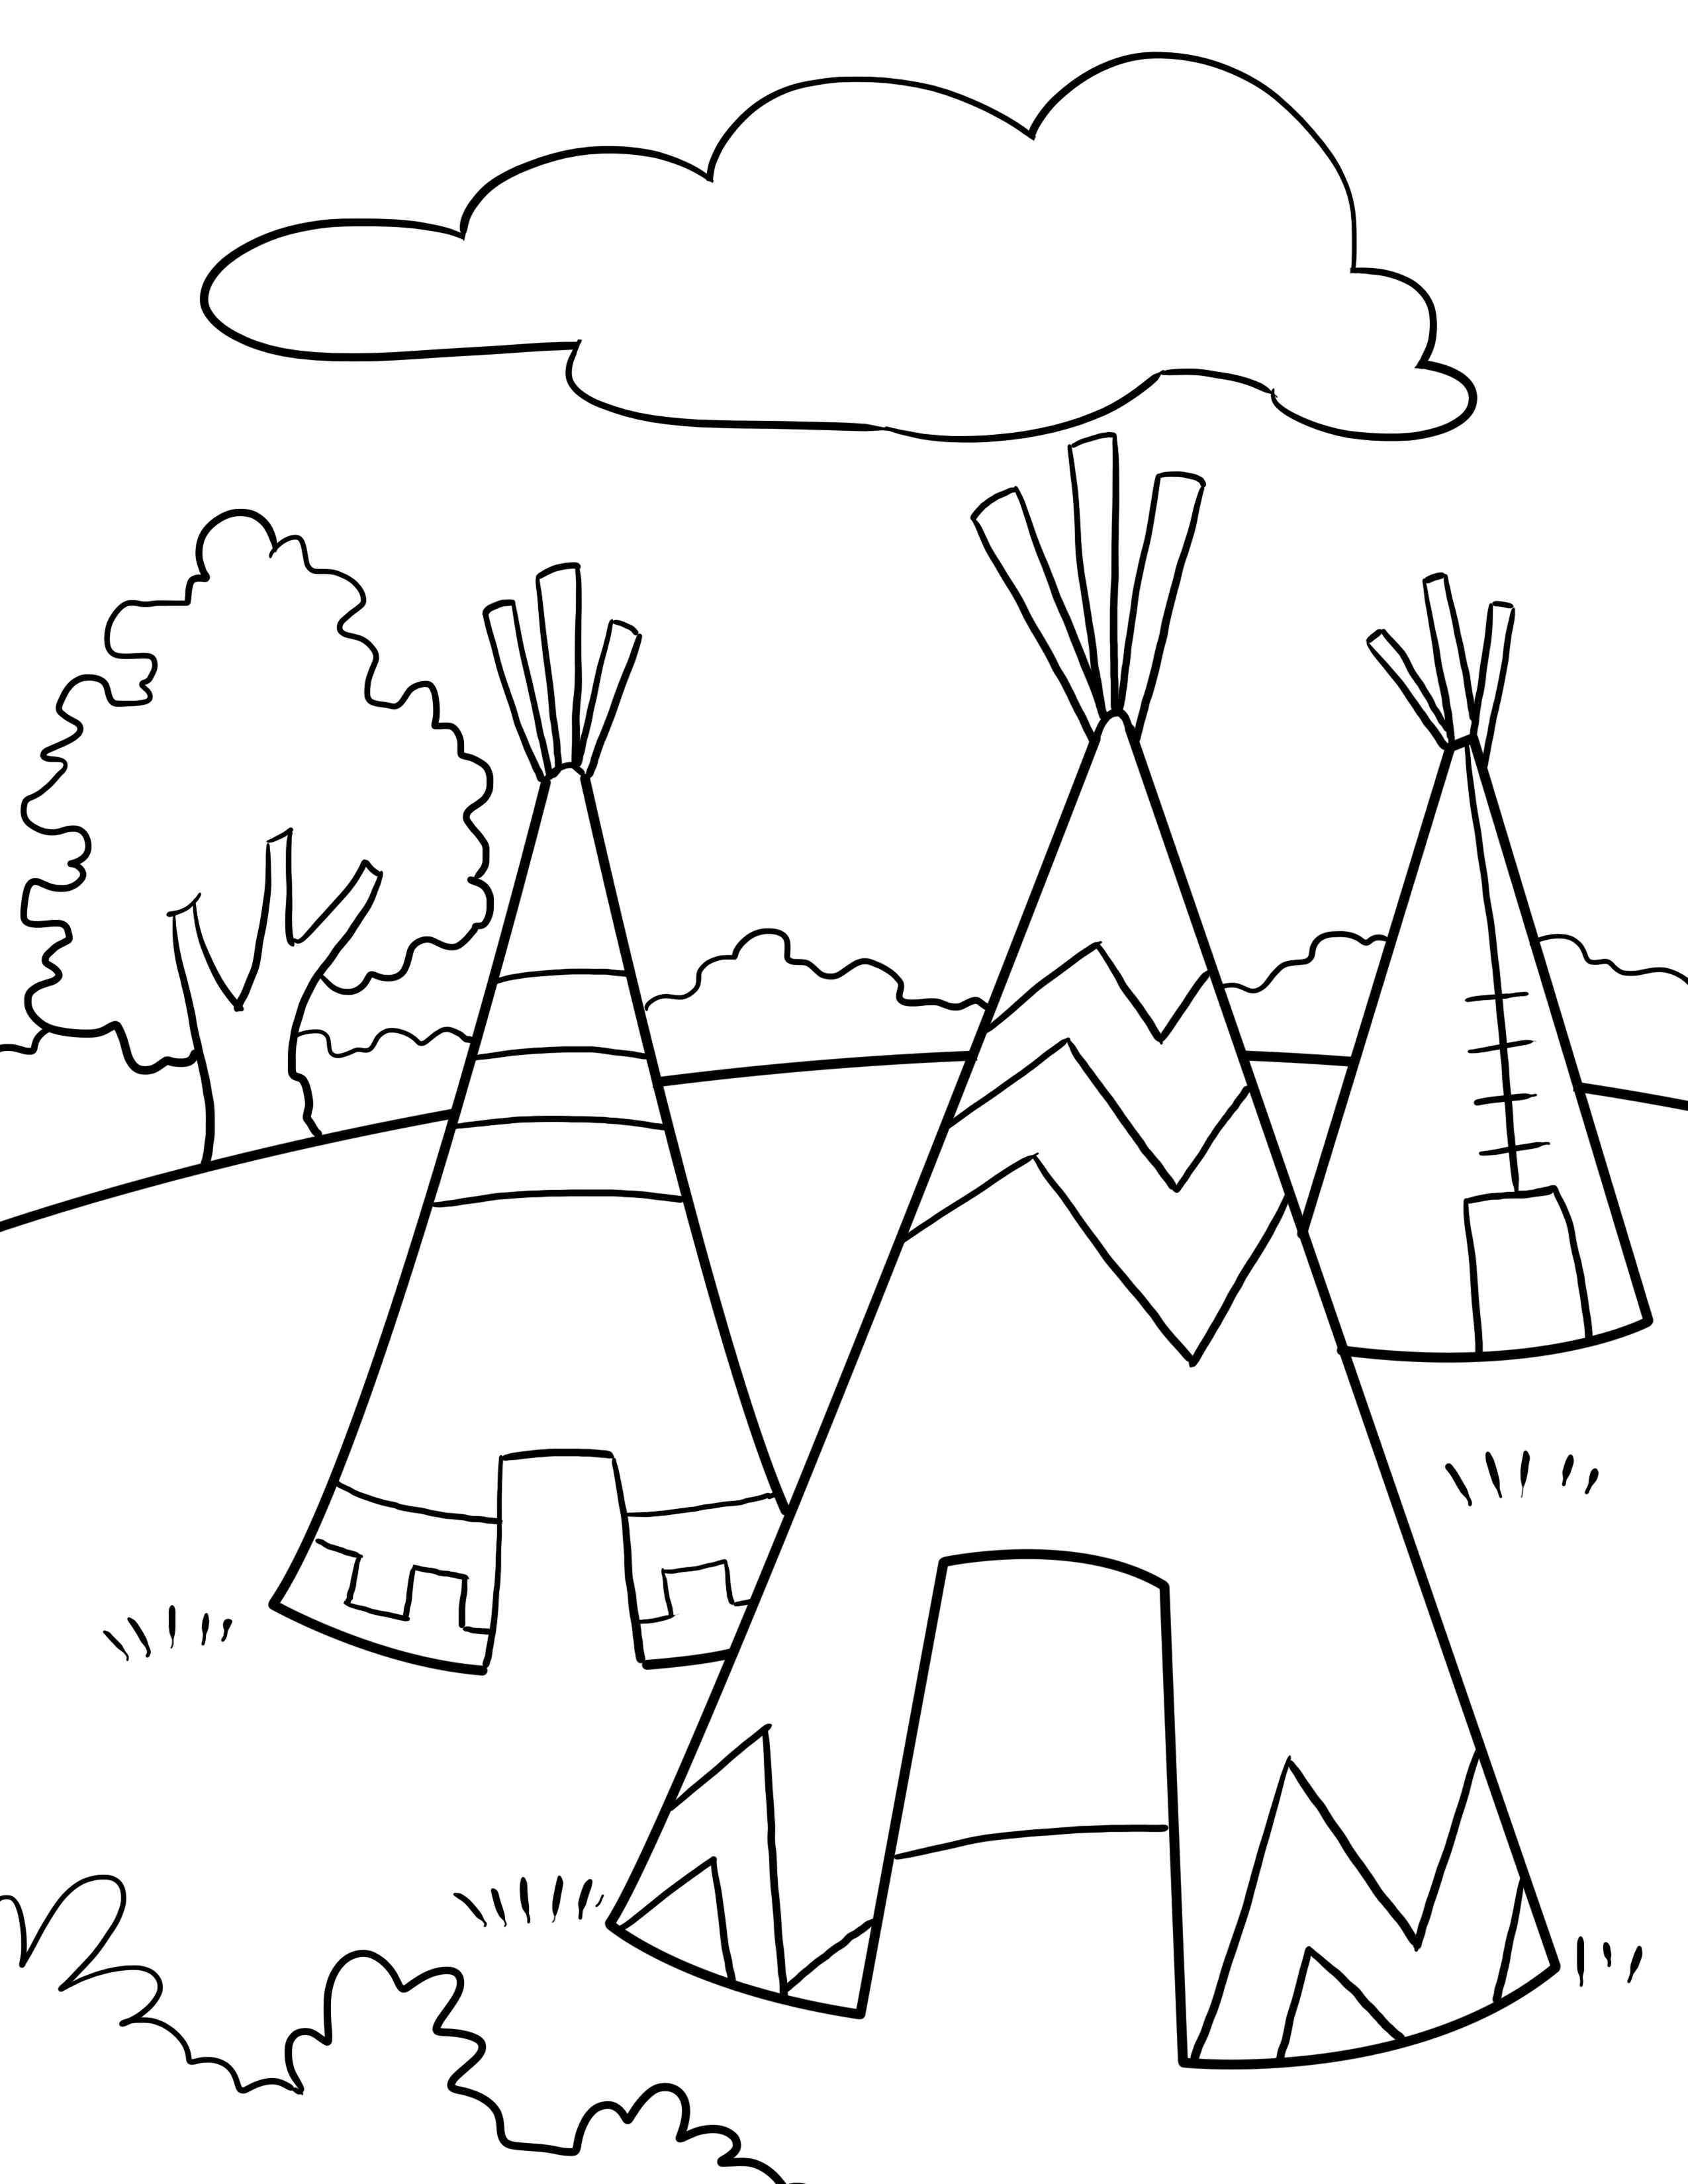 Native American Pottery Coloring Pages At Getcolorings